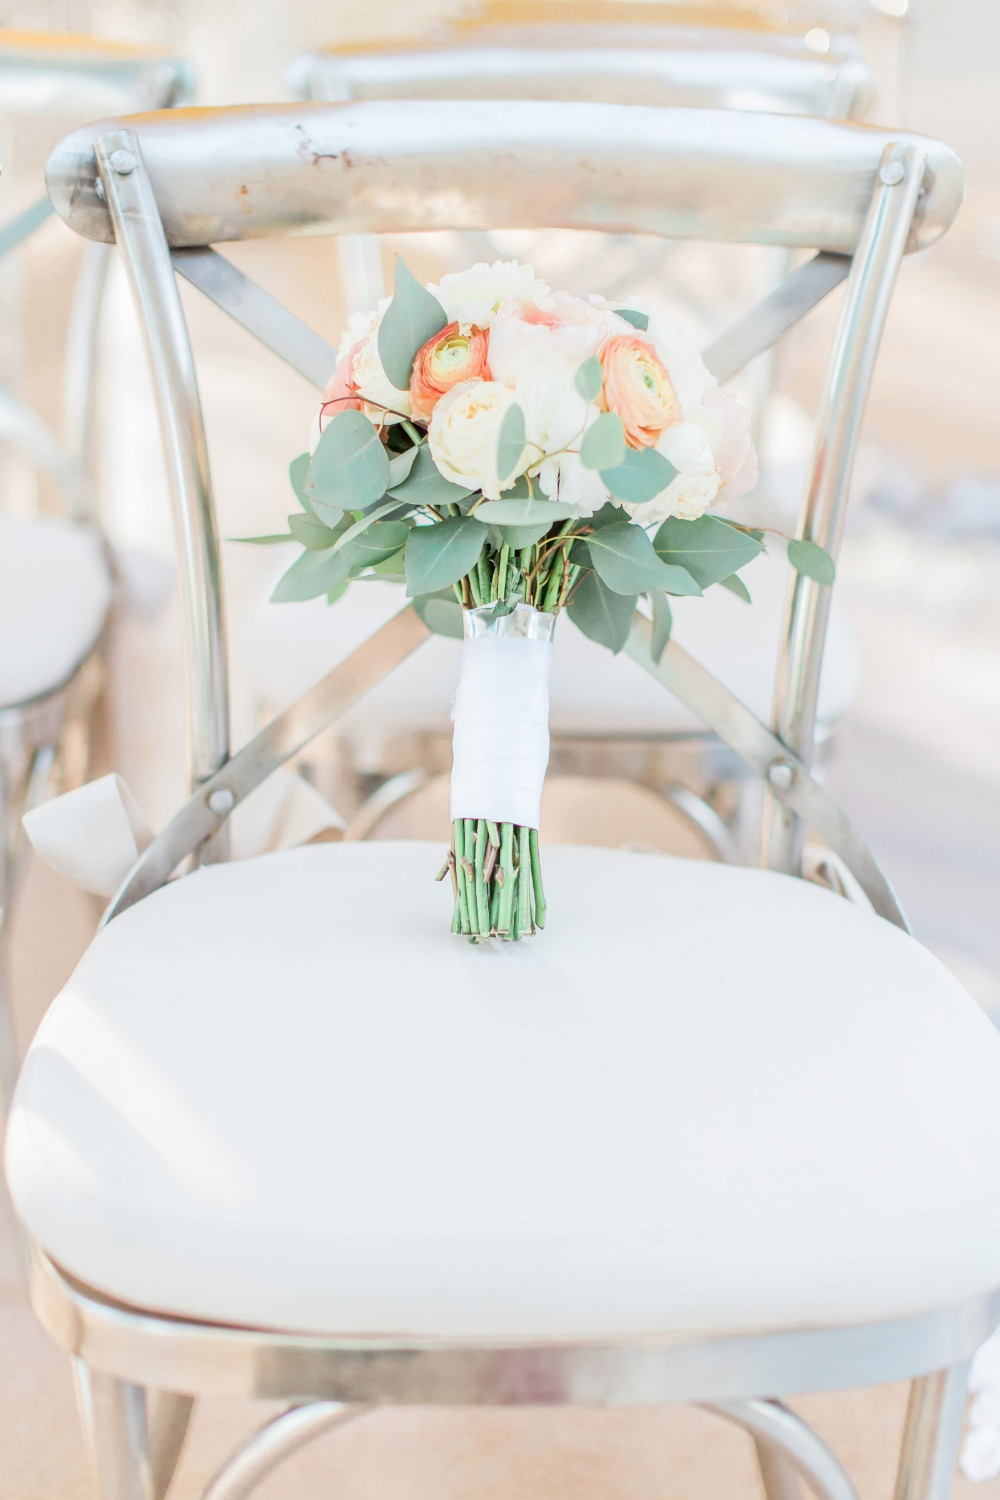 Silver chairs and bouquet